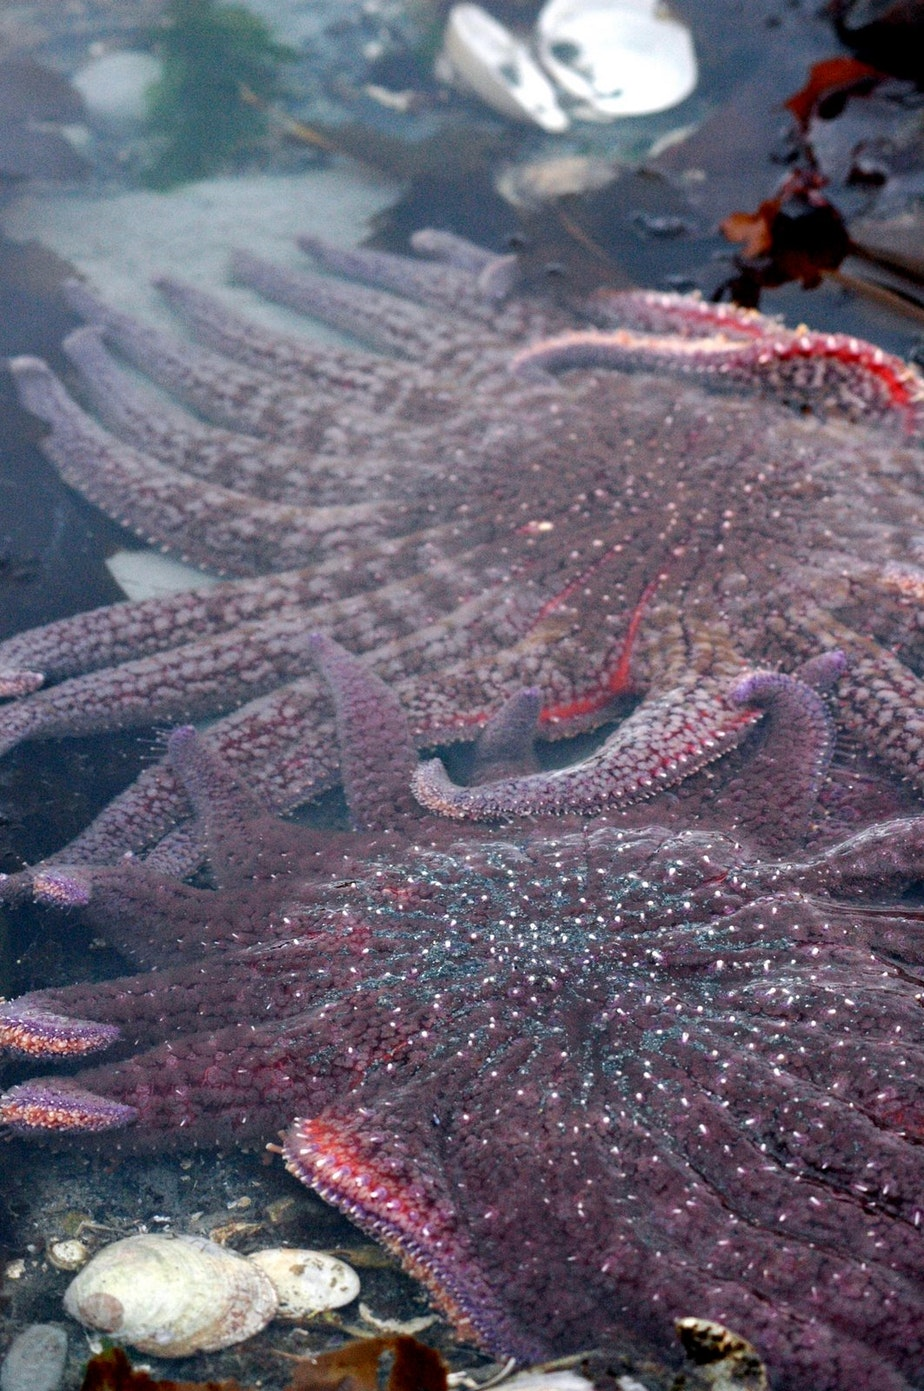 caption: Healthy sunflower stars off Alaska's Admiralty Island in 2008